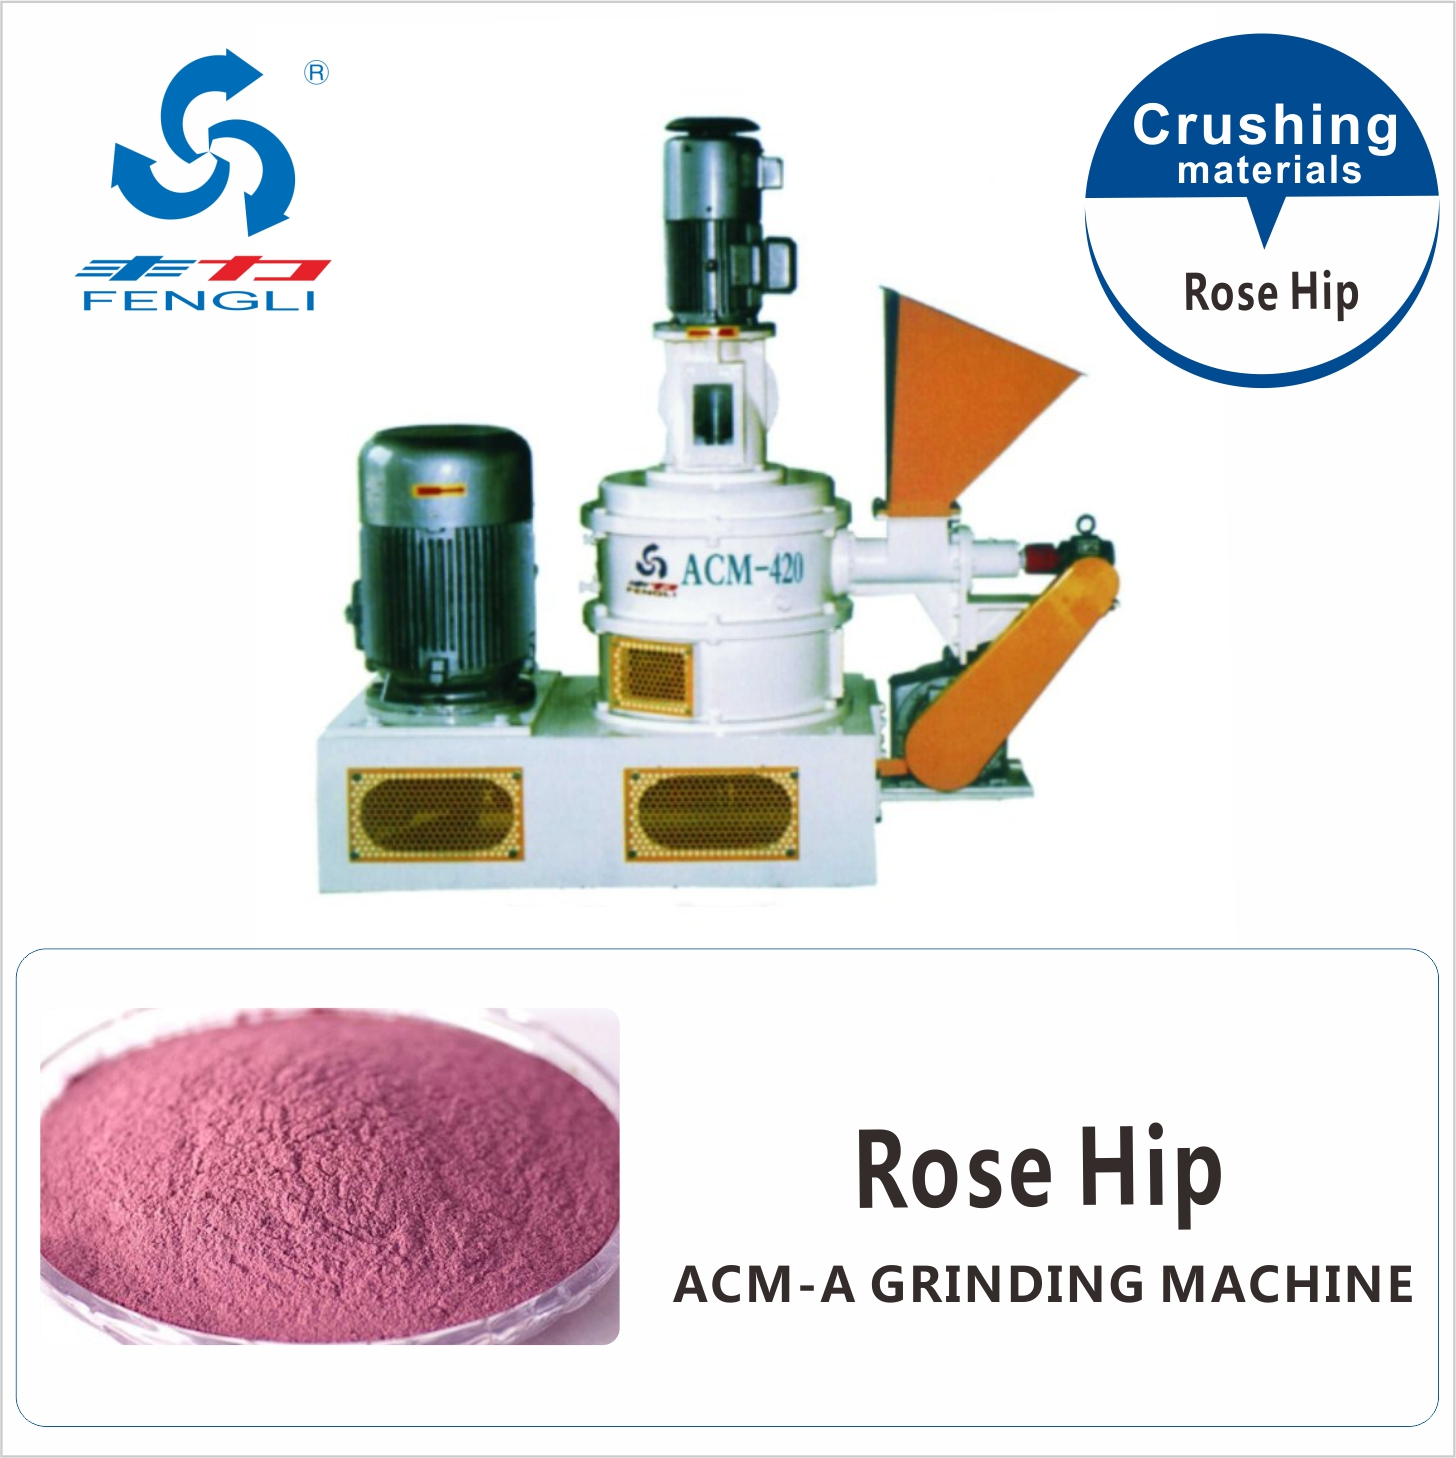 Superfine Rose Hip Grinding Machine